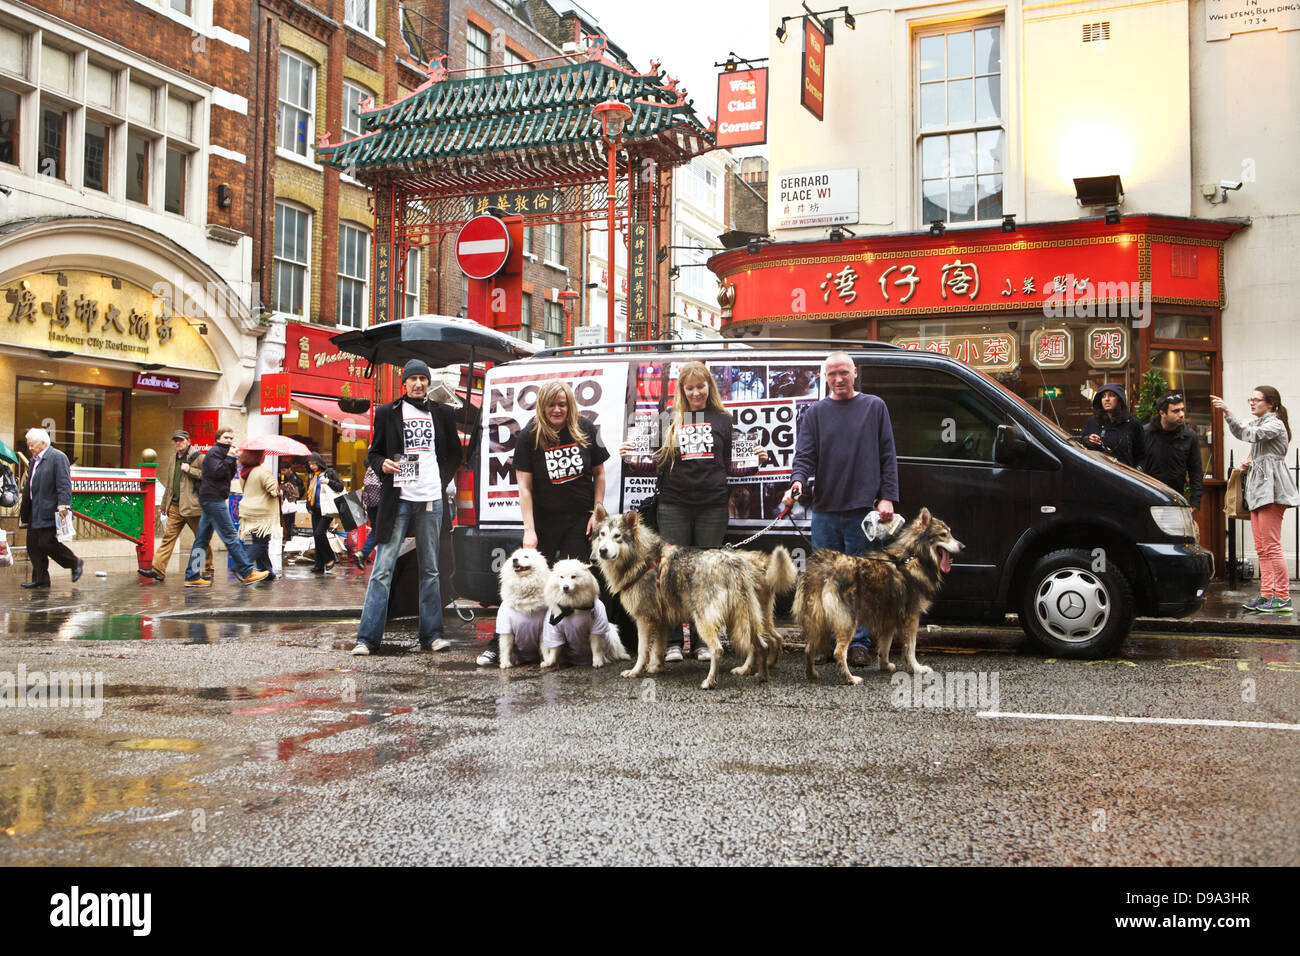 China Town, London, UK, 15th June 2013.  A group of people campaigning to raise awareness of the dog meat trade - Stock Image